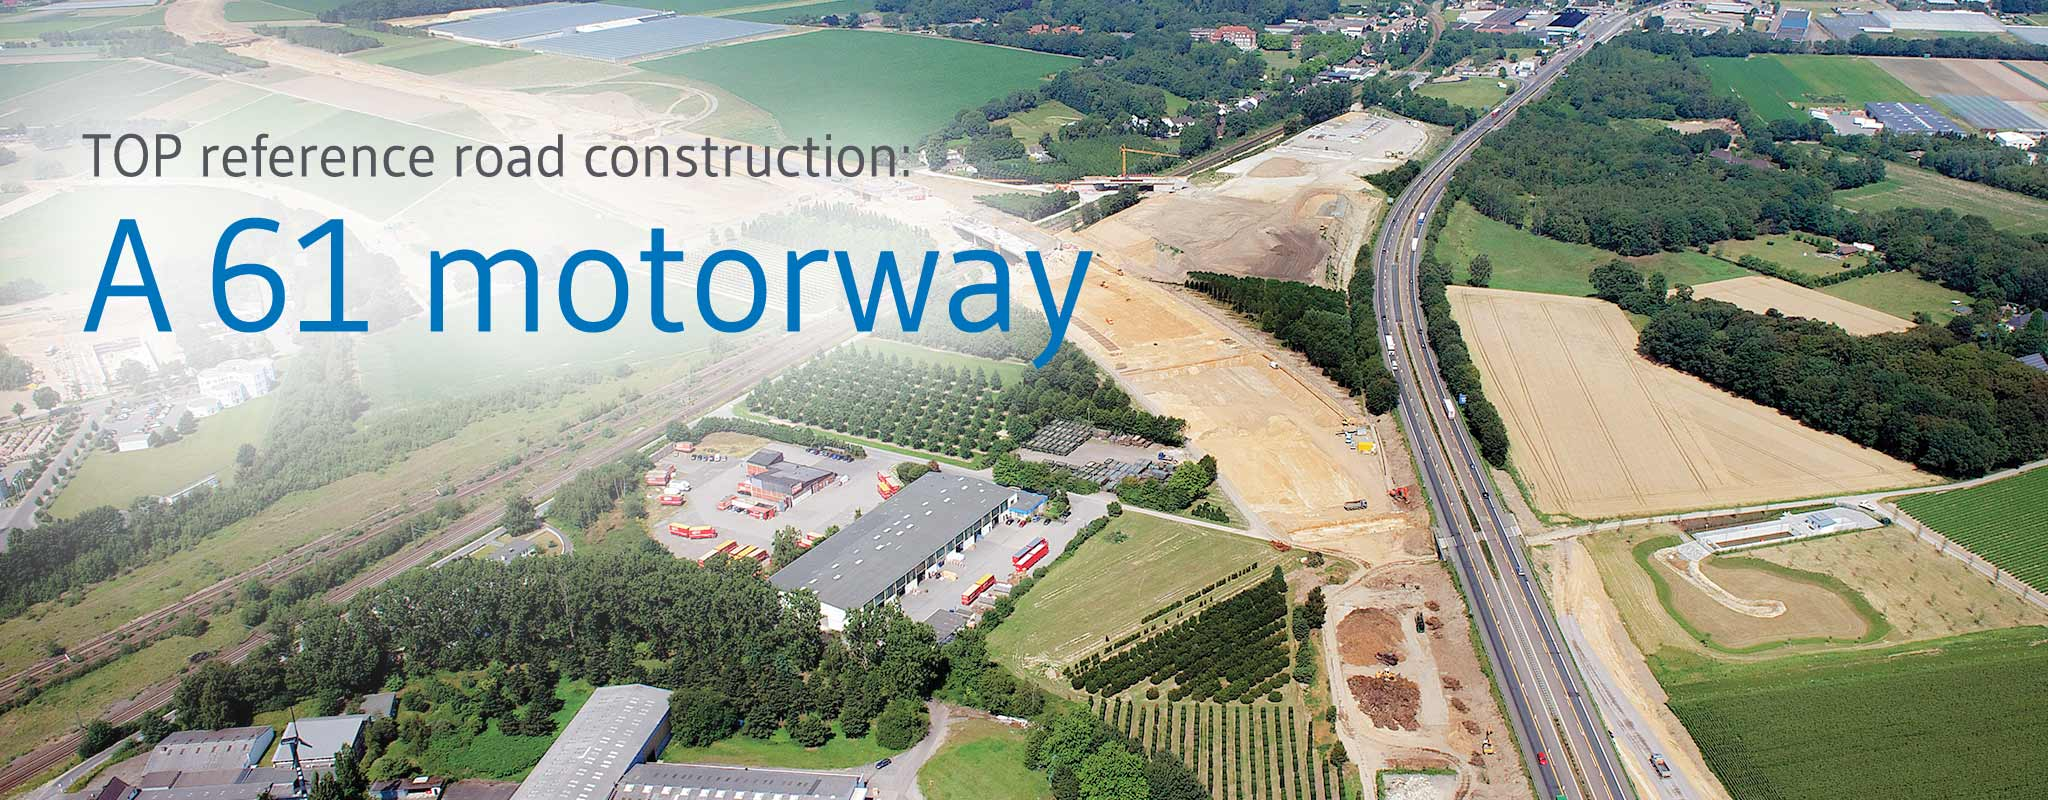 A 61 motorway: Execution with IBA as substitute construction material in the road substructure